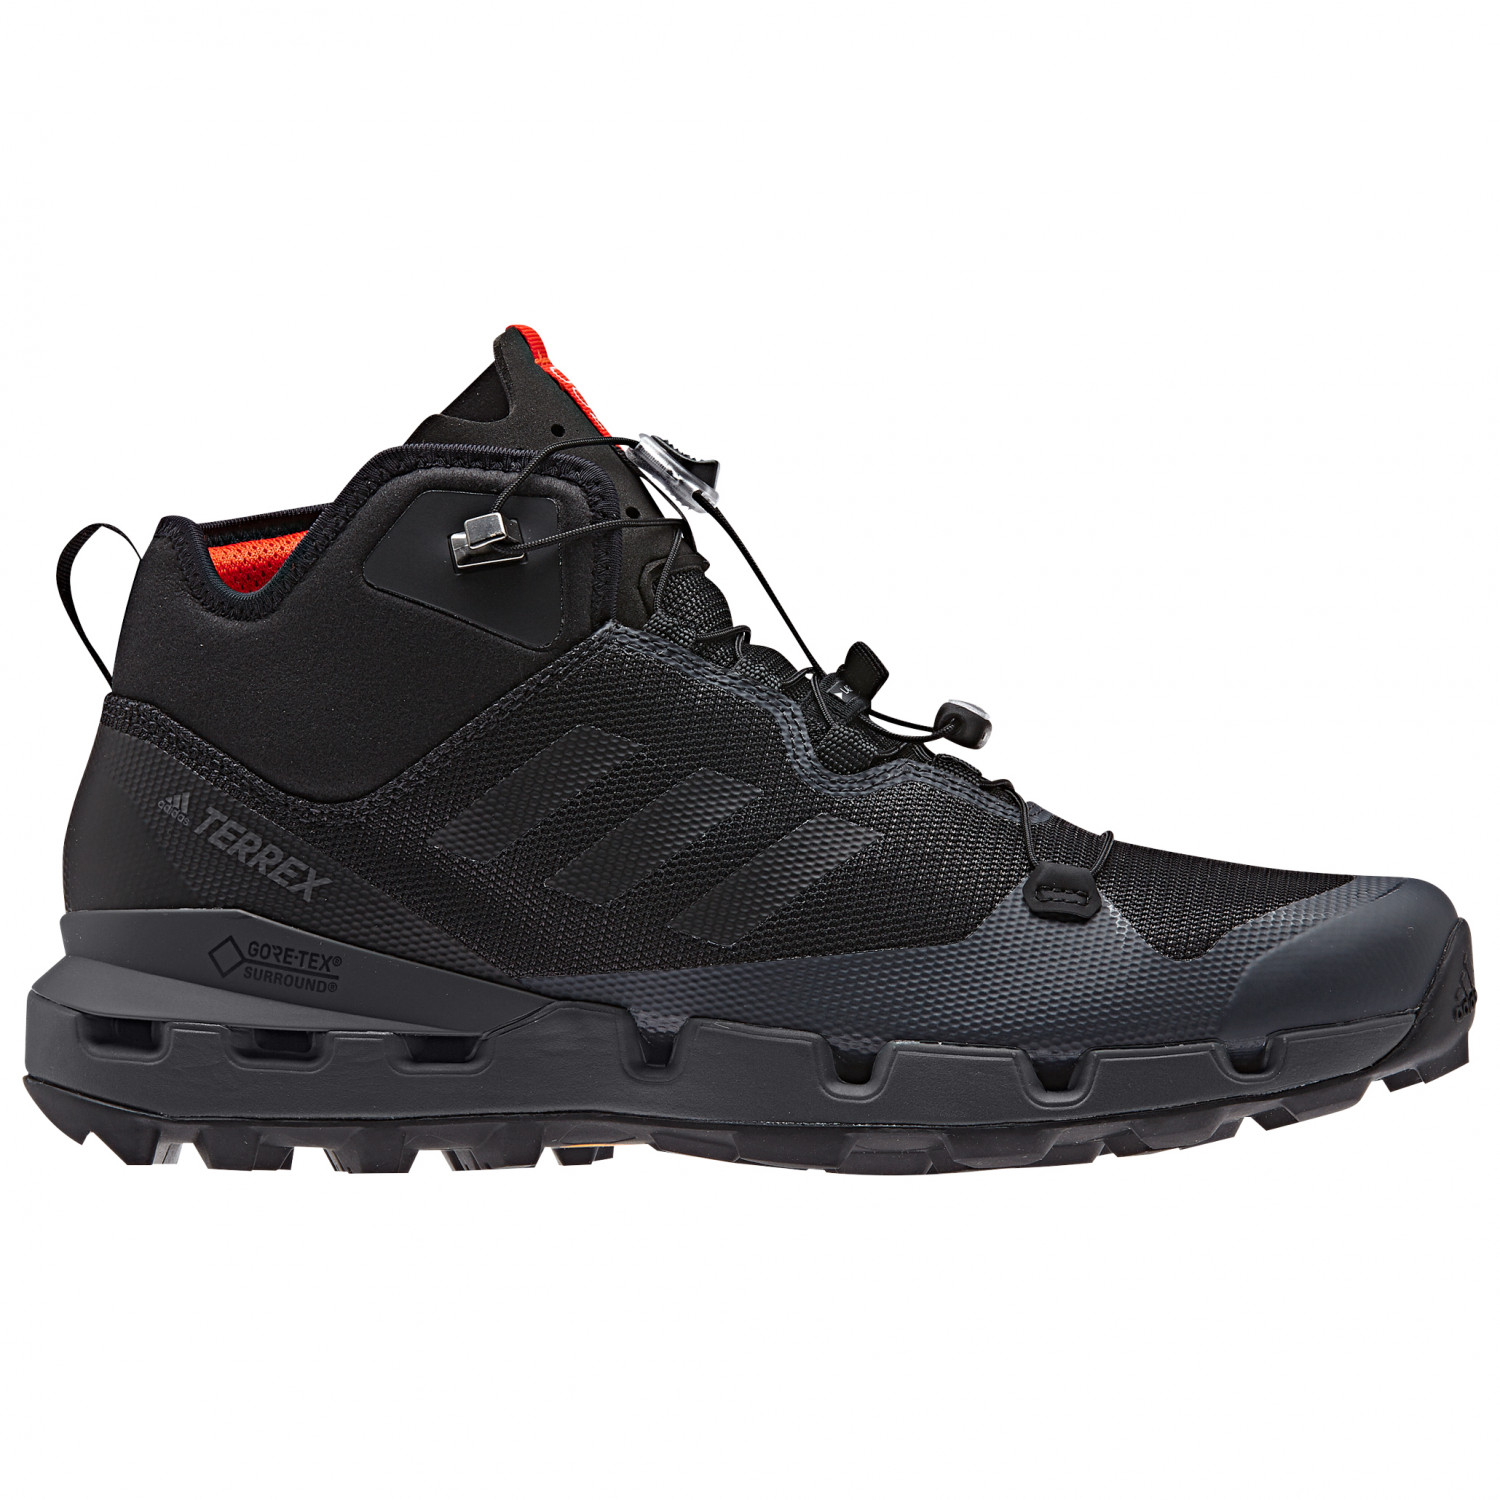 7997c36a8f2 Adidas Terrex Fast Mid GTX-Surround - Walking Boots Men s